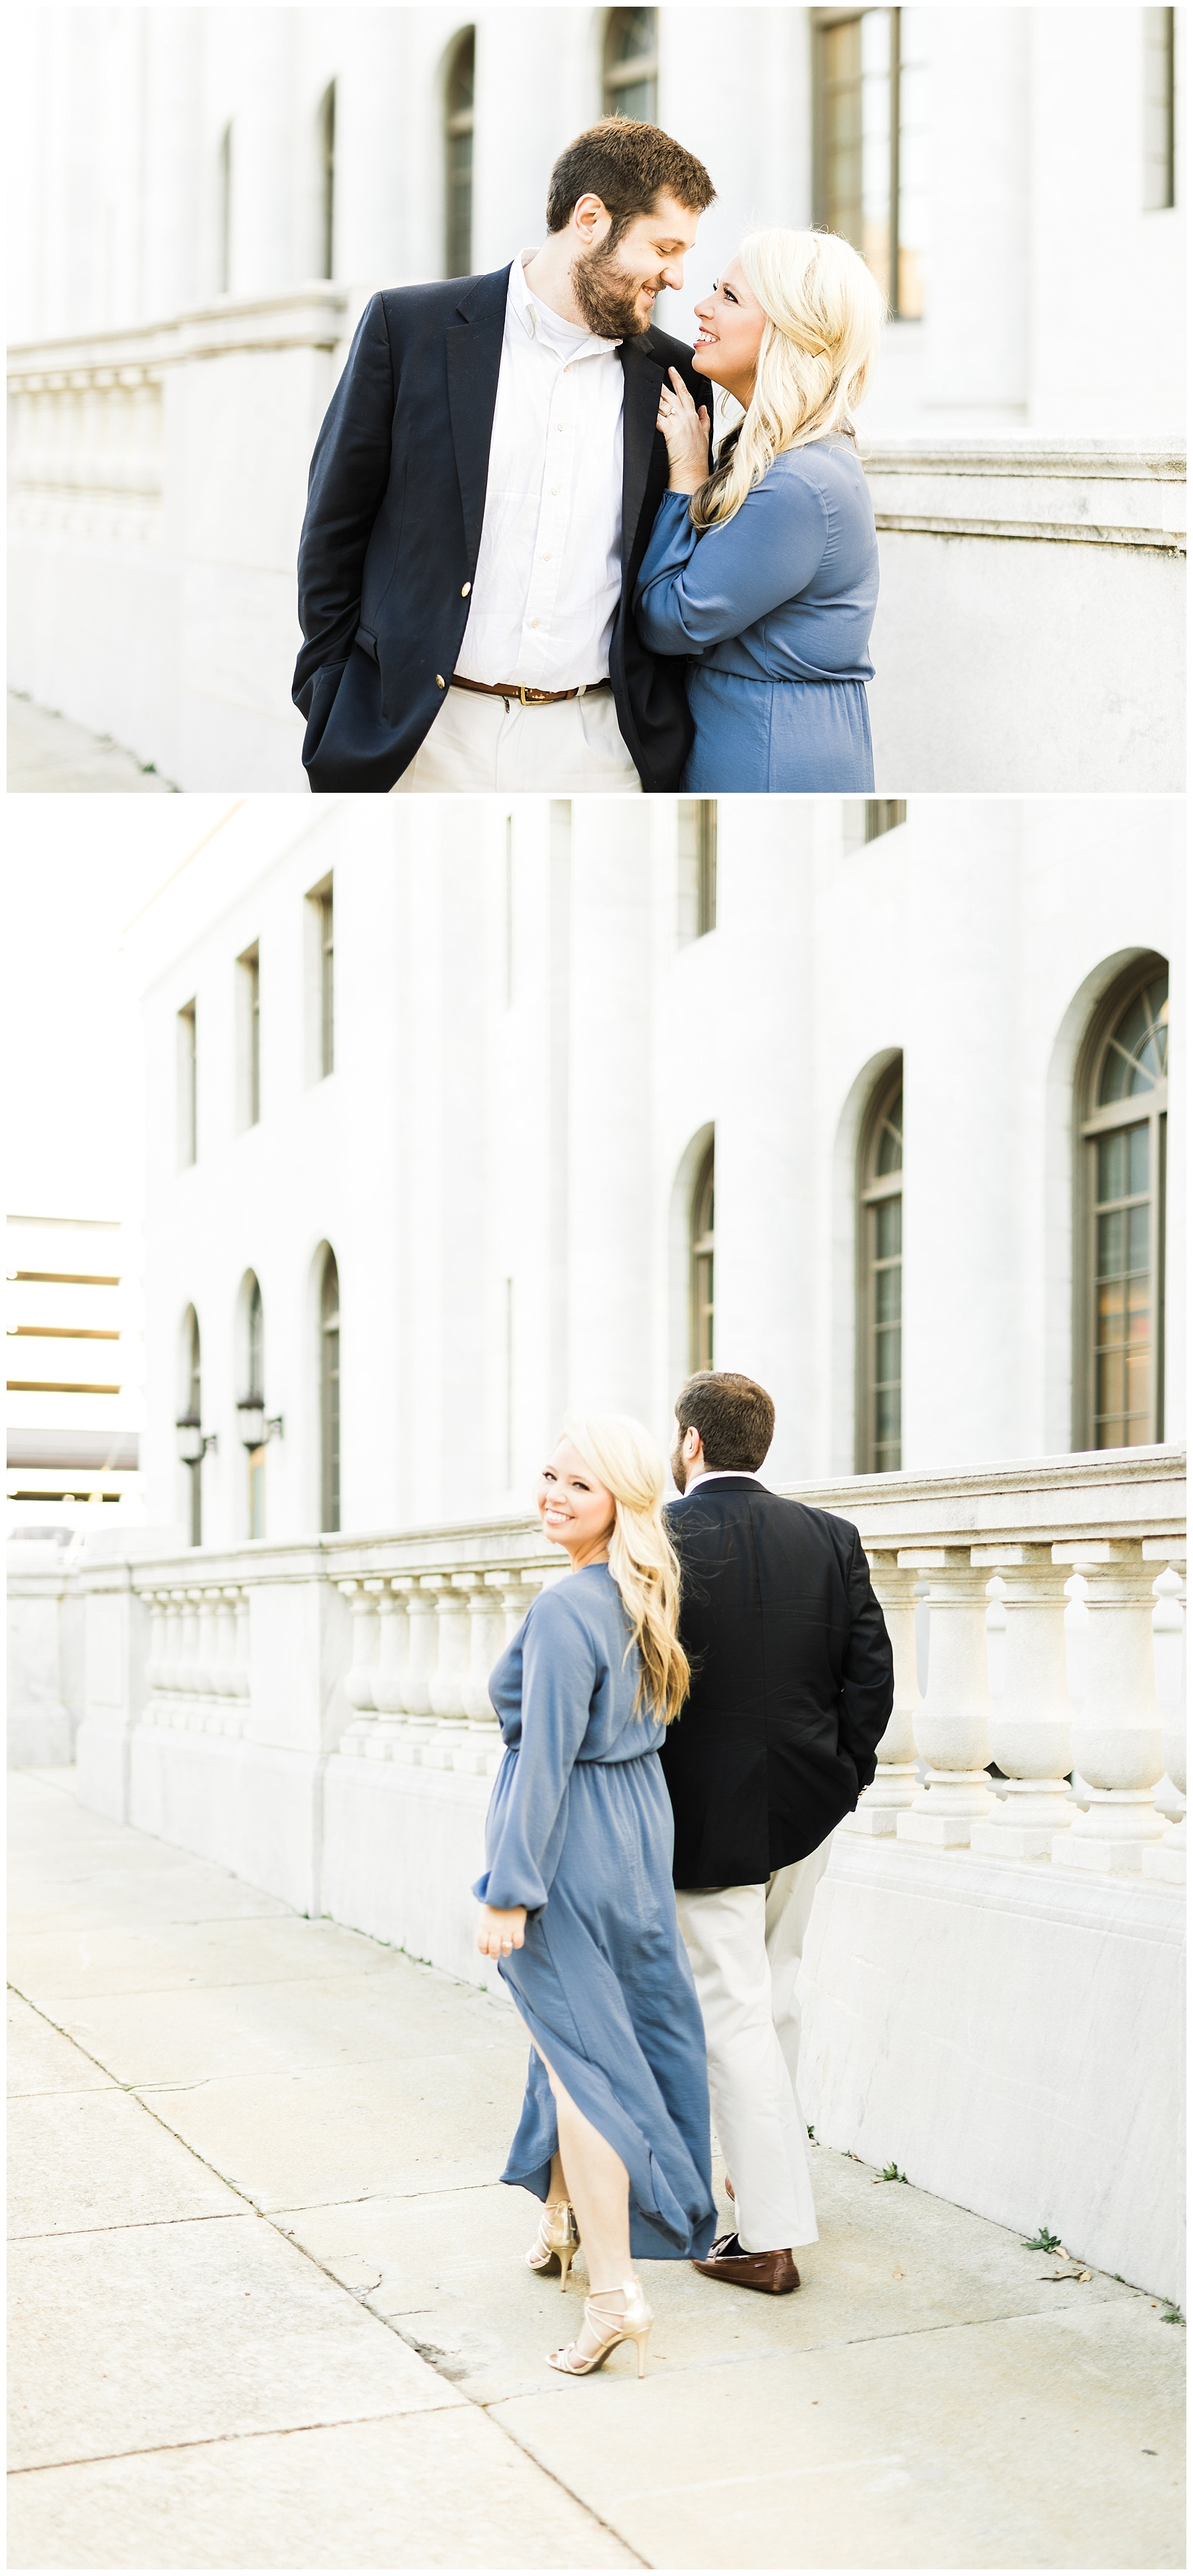 2018-02-13_0003 She Said Yes: Jessica Stalnaker Uncategorized    invision_events, birmingham_al, auburn_al, alabama, atlanta_ga, atl, georgia, wedding_planner, wedding_designer, weddings, photography, wedding_planning